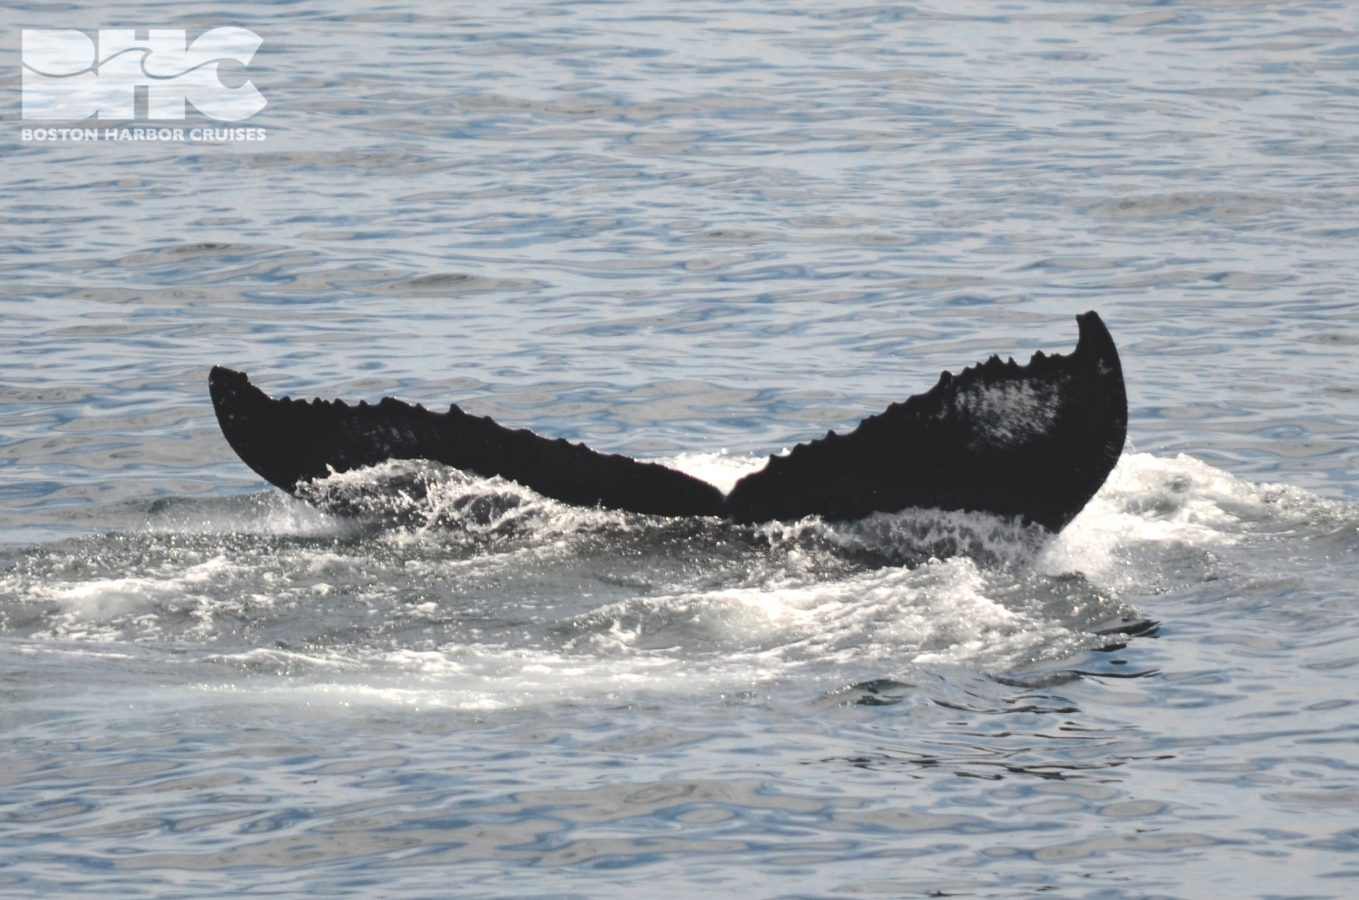 fluke of a humpback whale named Bounce